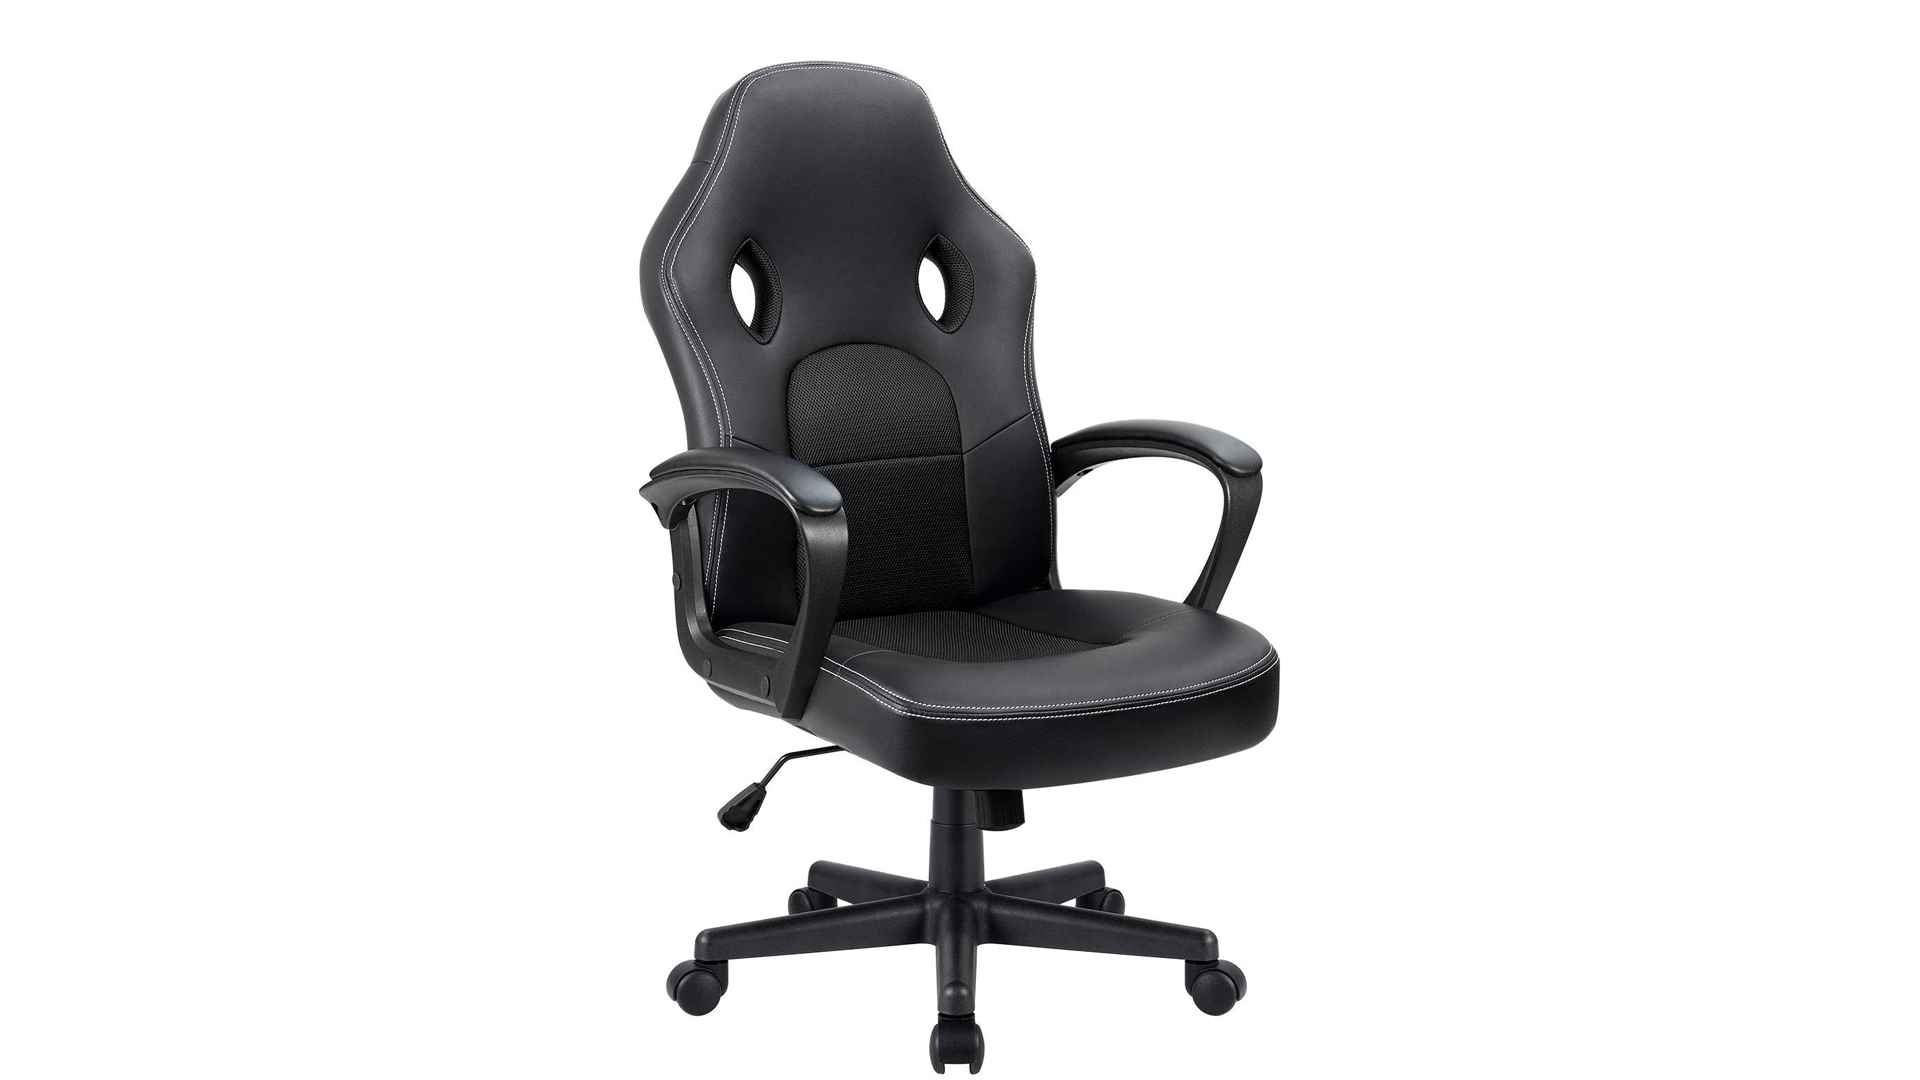 A photo of the Furmax adjustable office chair.